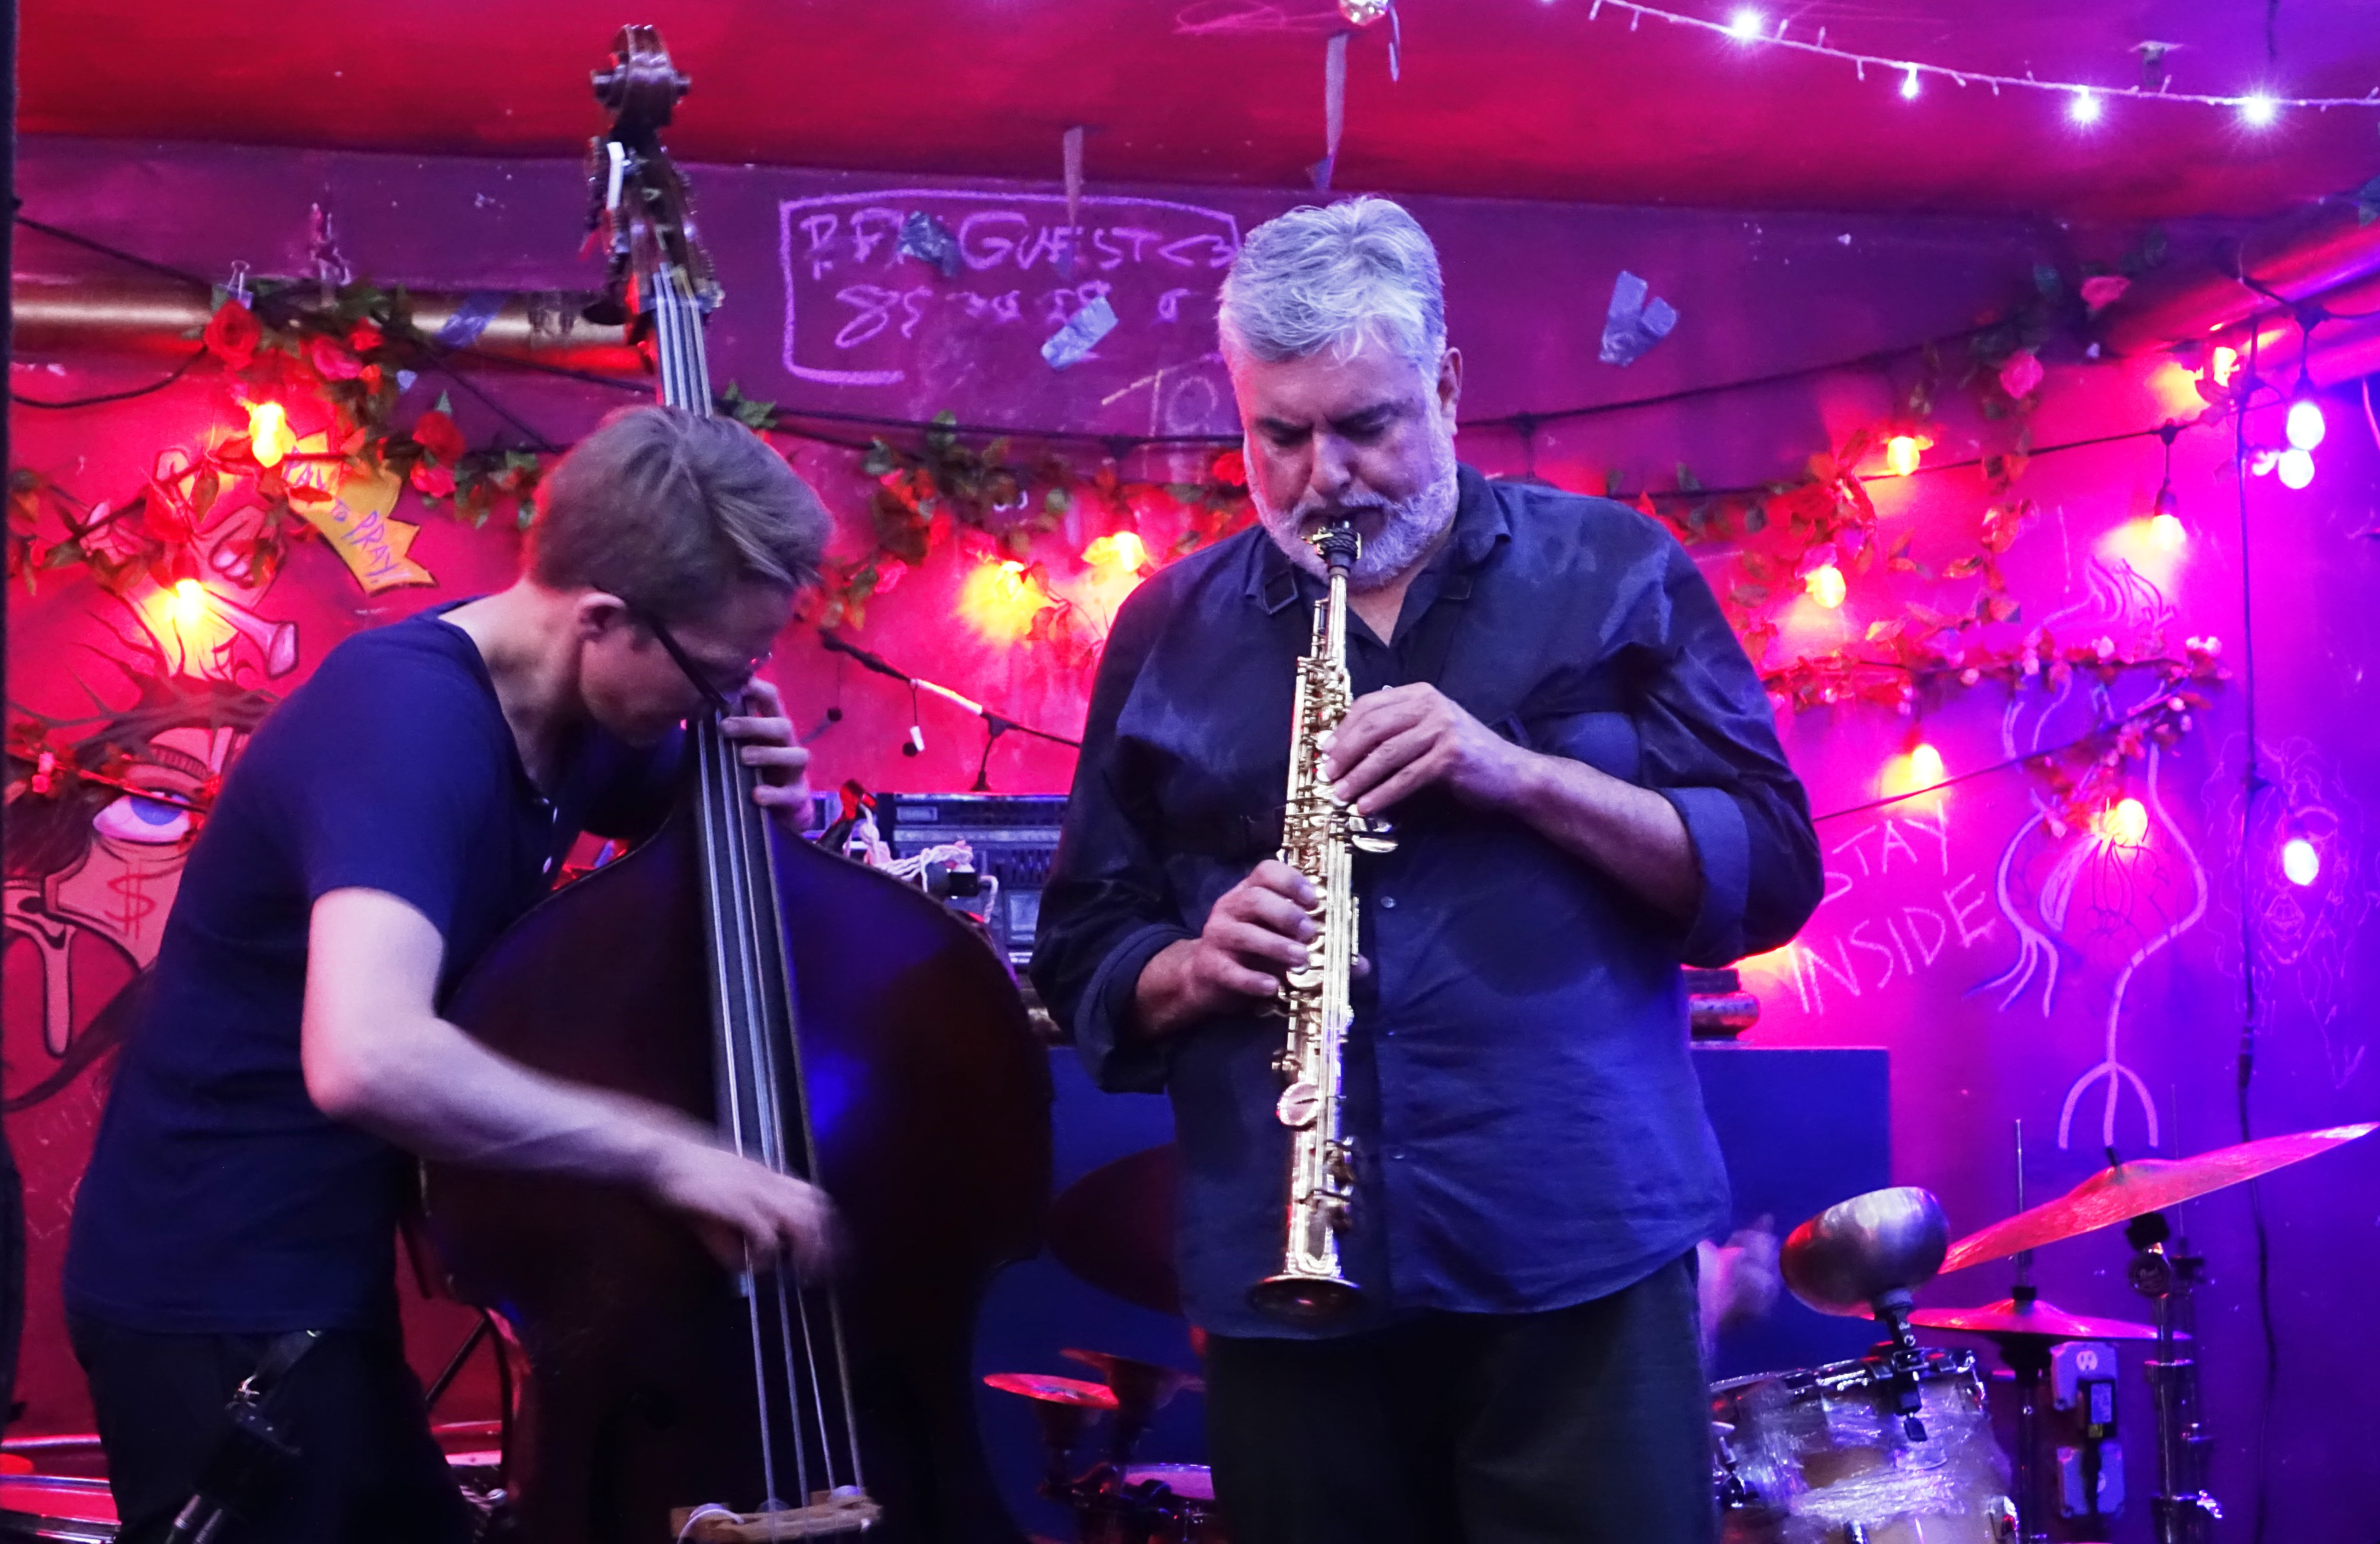 Eivind Opsvik and Tony Malaby at the Bushwick Public House, Brooklyn in June 2019